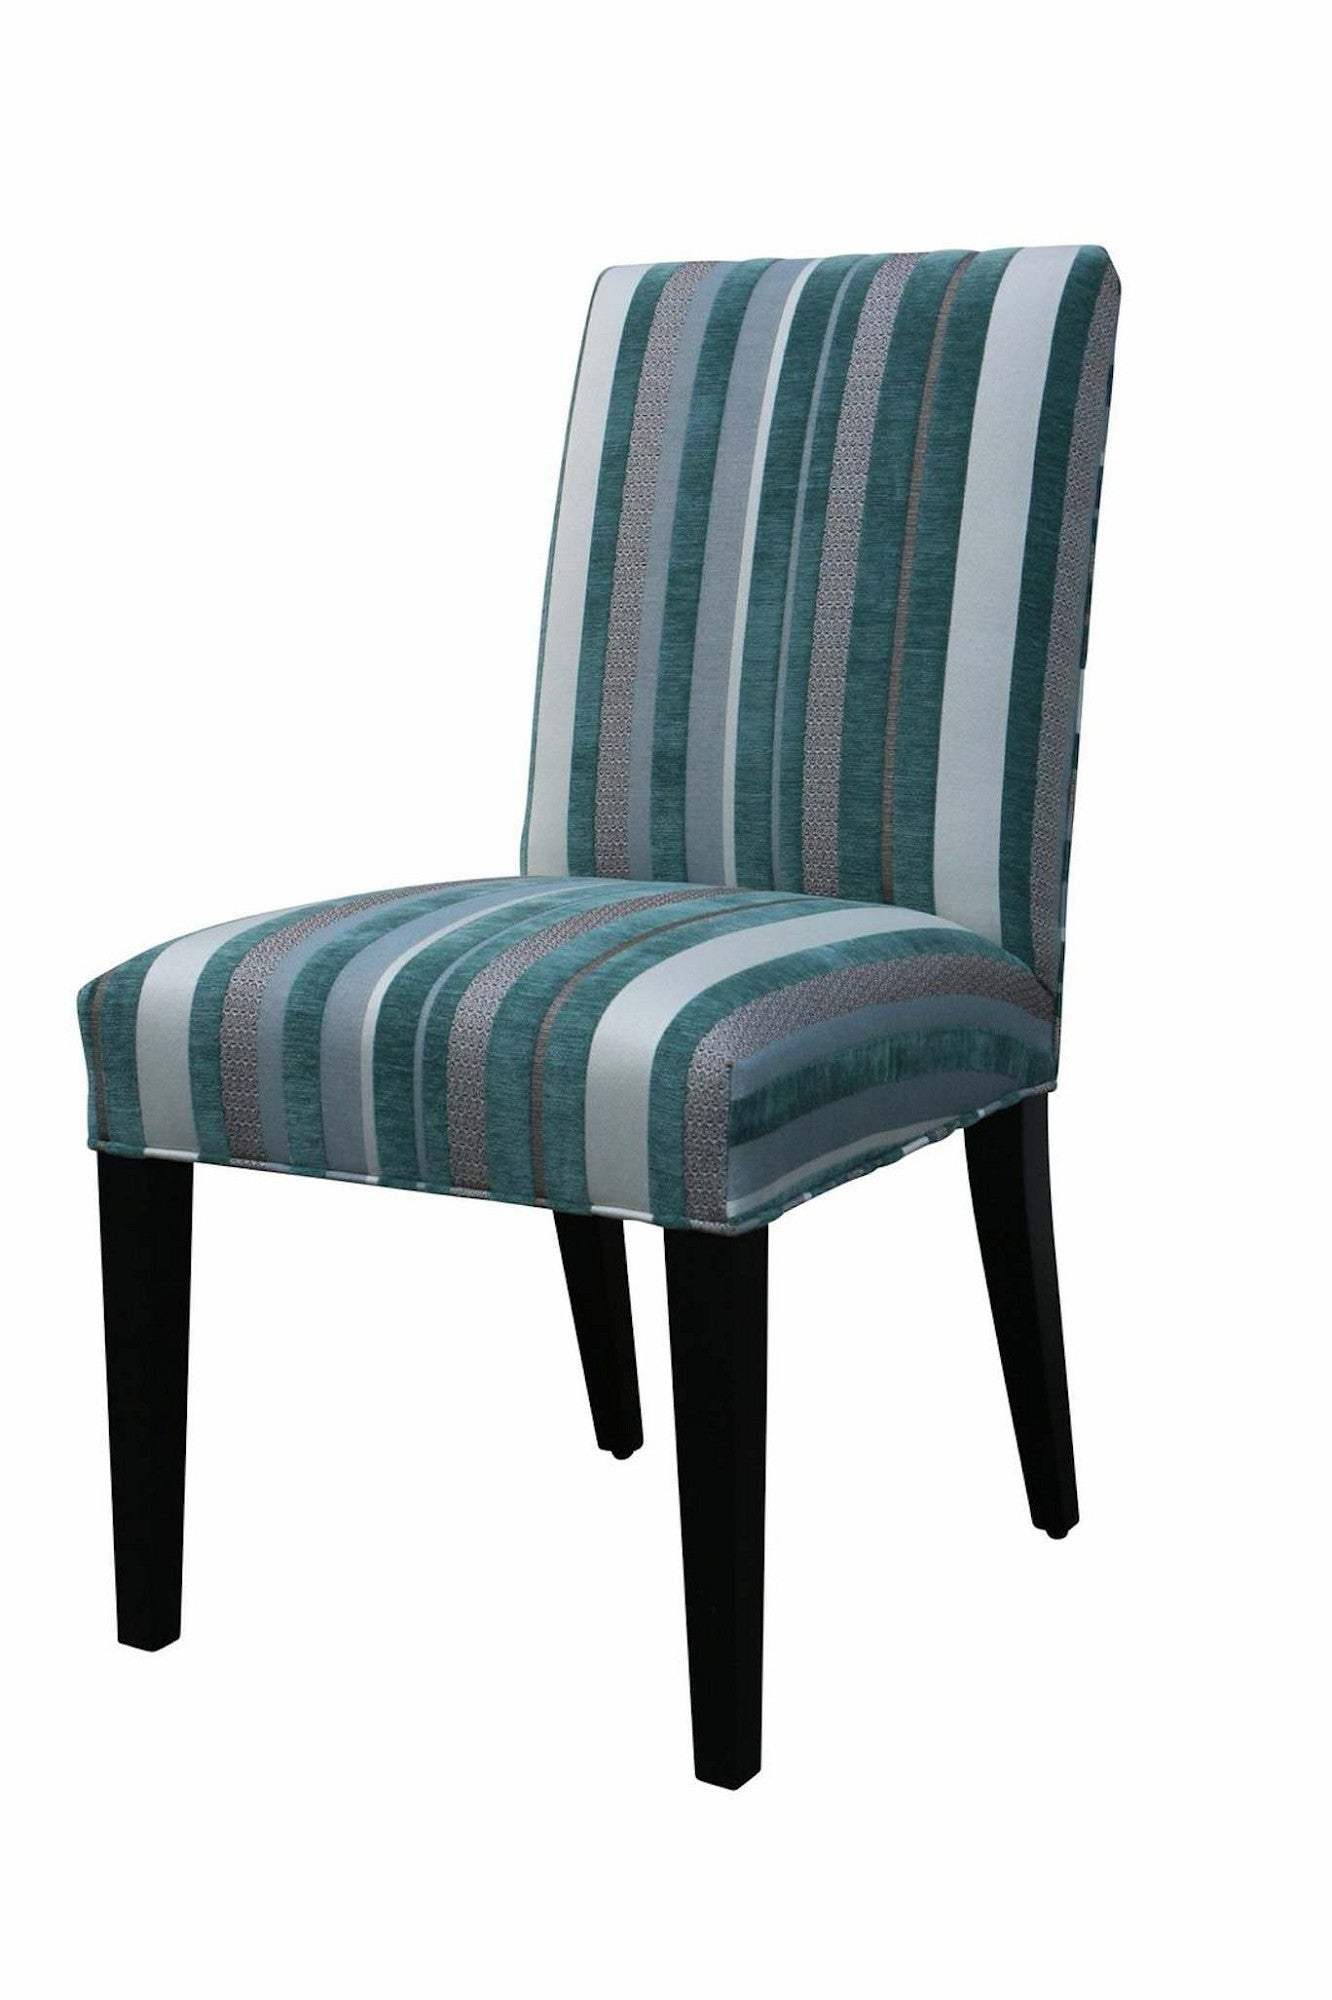 Custom Dining Room Chairs for Every Home Interior Design Style ...